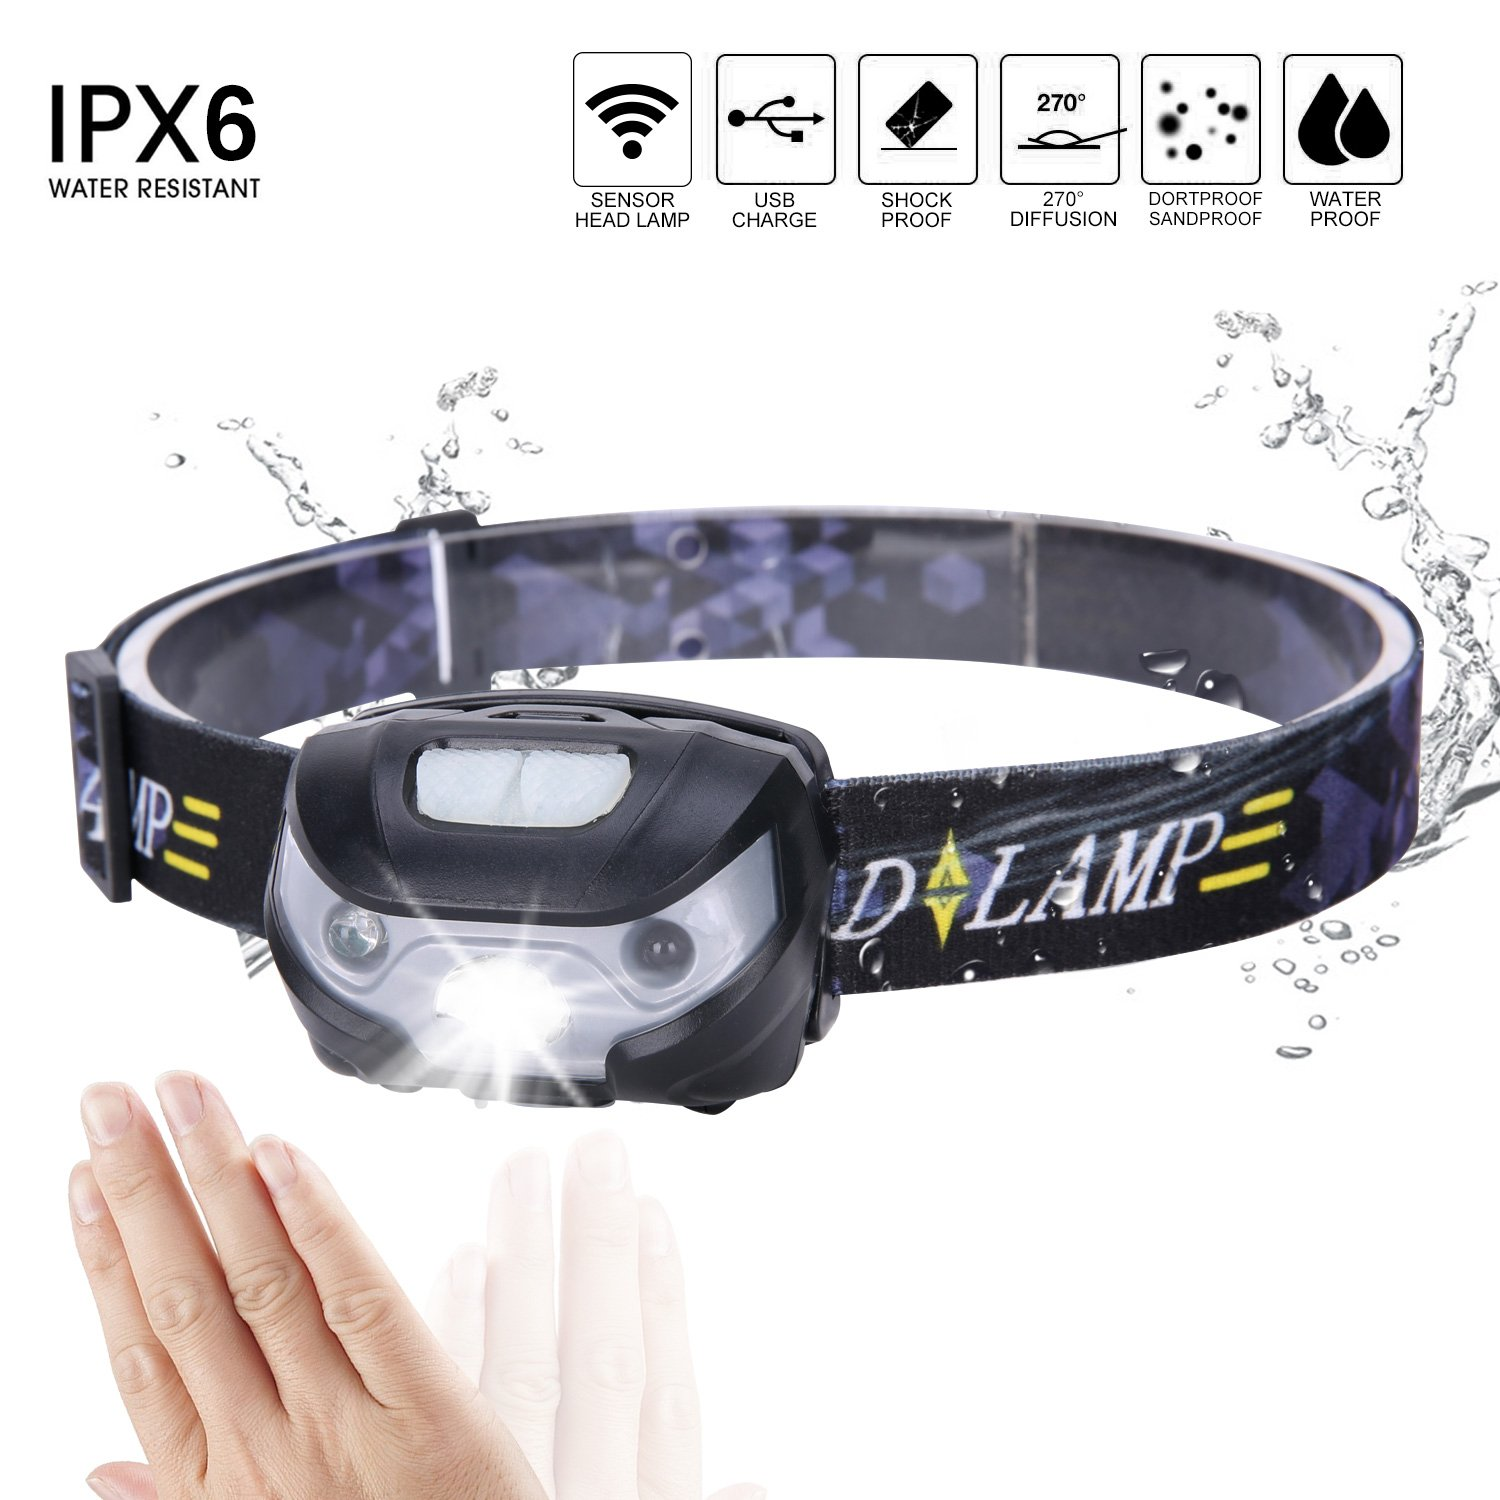 Yiiyaa Ultralight LED Headlamp Sensor Motion USB Ricaricabile IPX6 Head Torch Hand Wave Control Faro per la corsa in bicicletta Camping Hiking Pesca Arrampicata Caccia Reading Solam